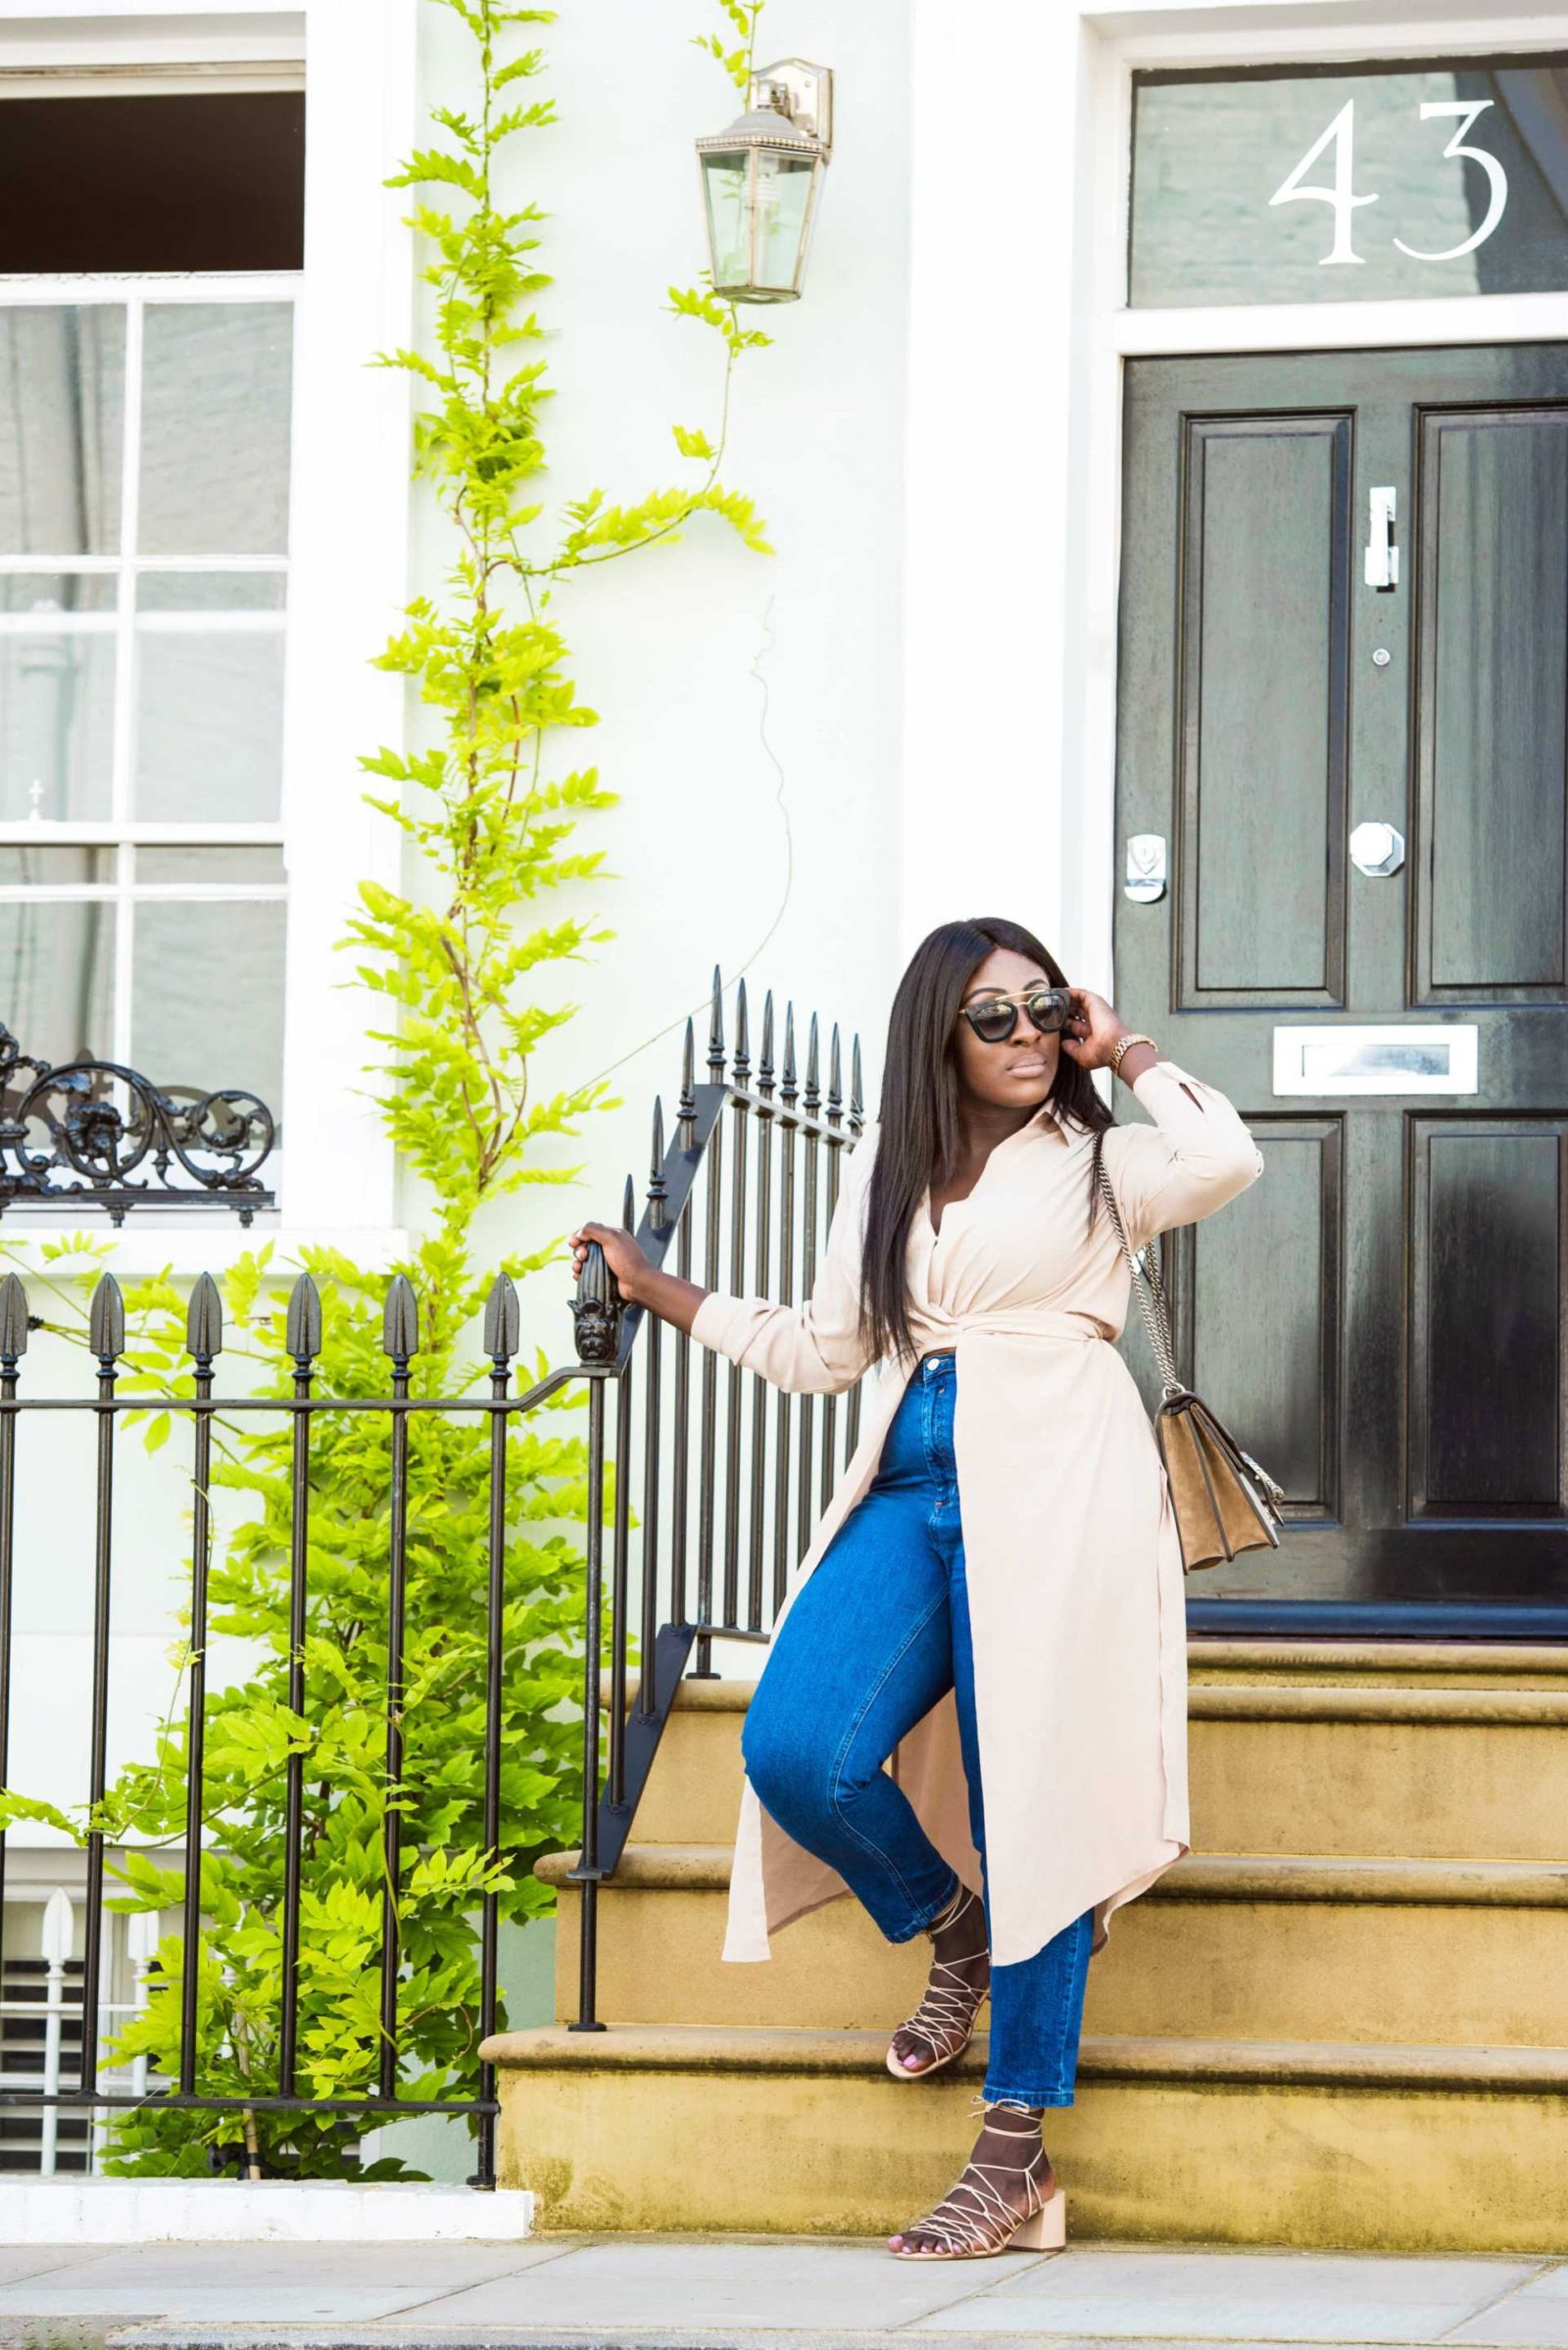 The Maxi Shirt - Time to Transition 2 - Style and the Sass